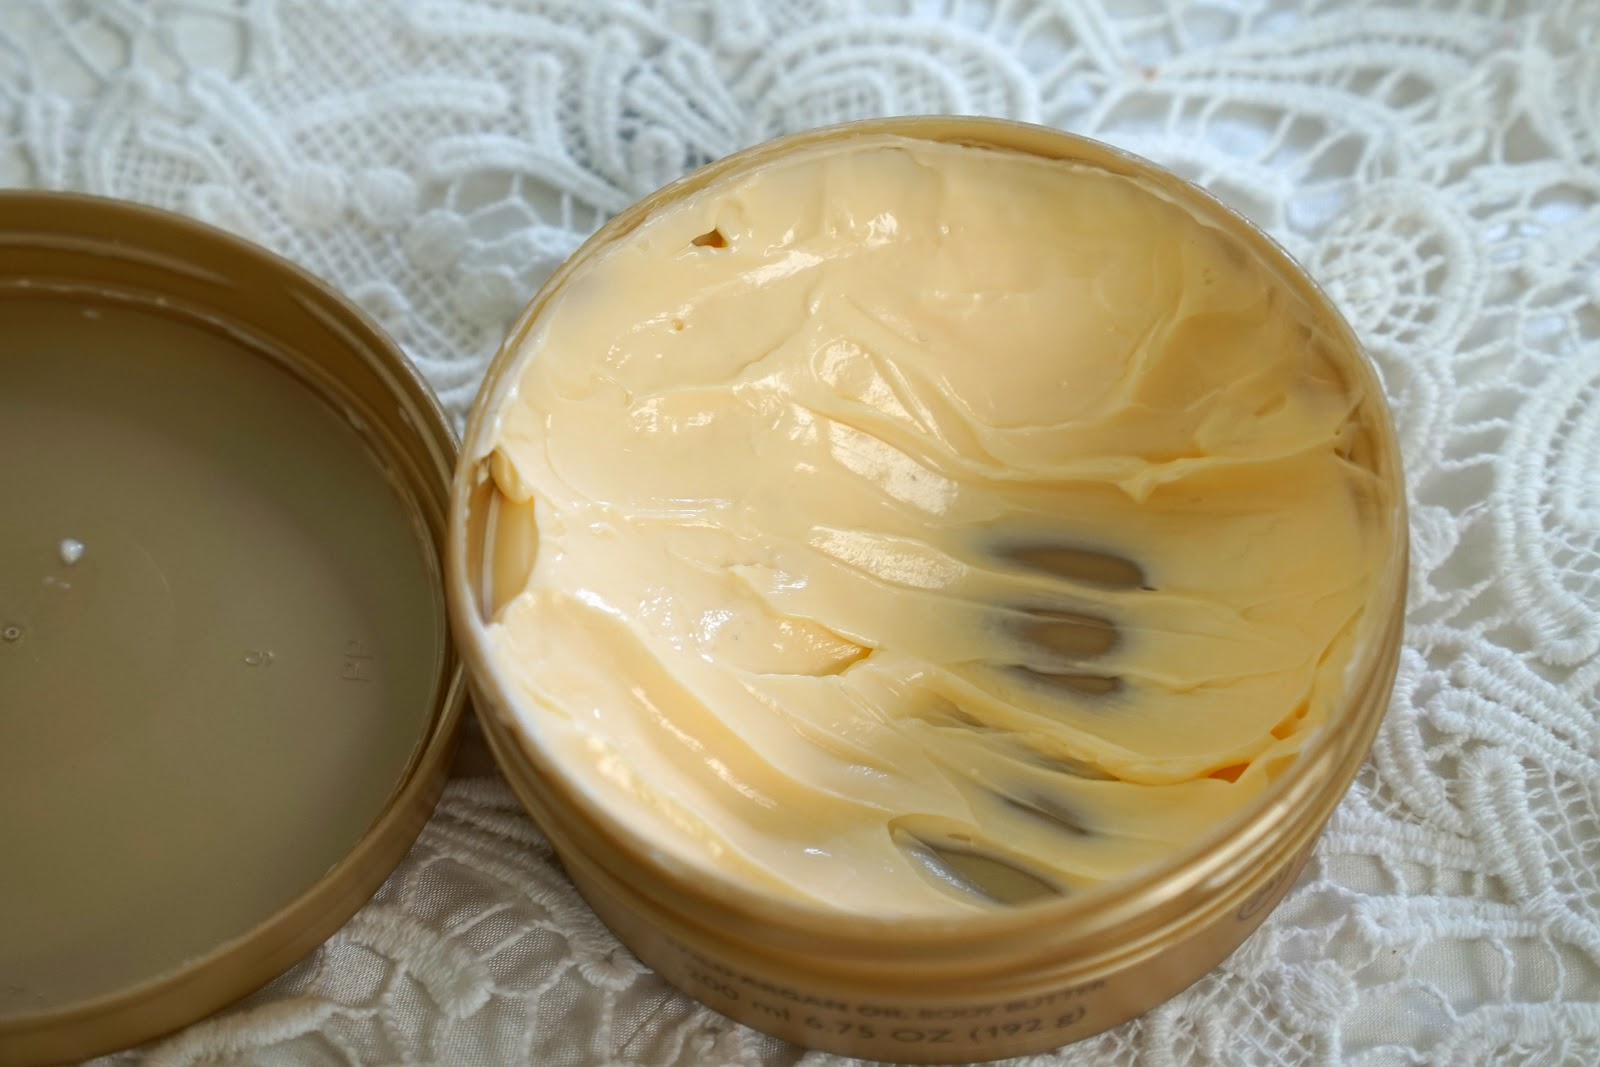 the body shop argan oil body butter